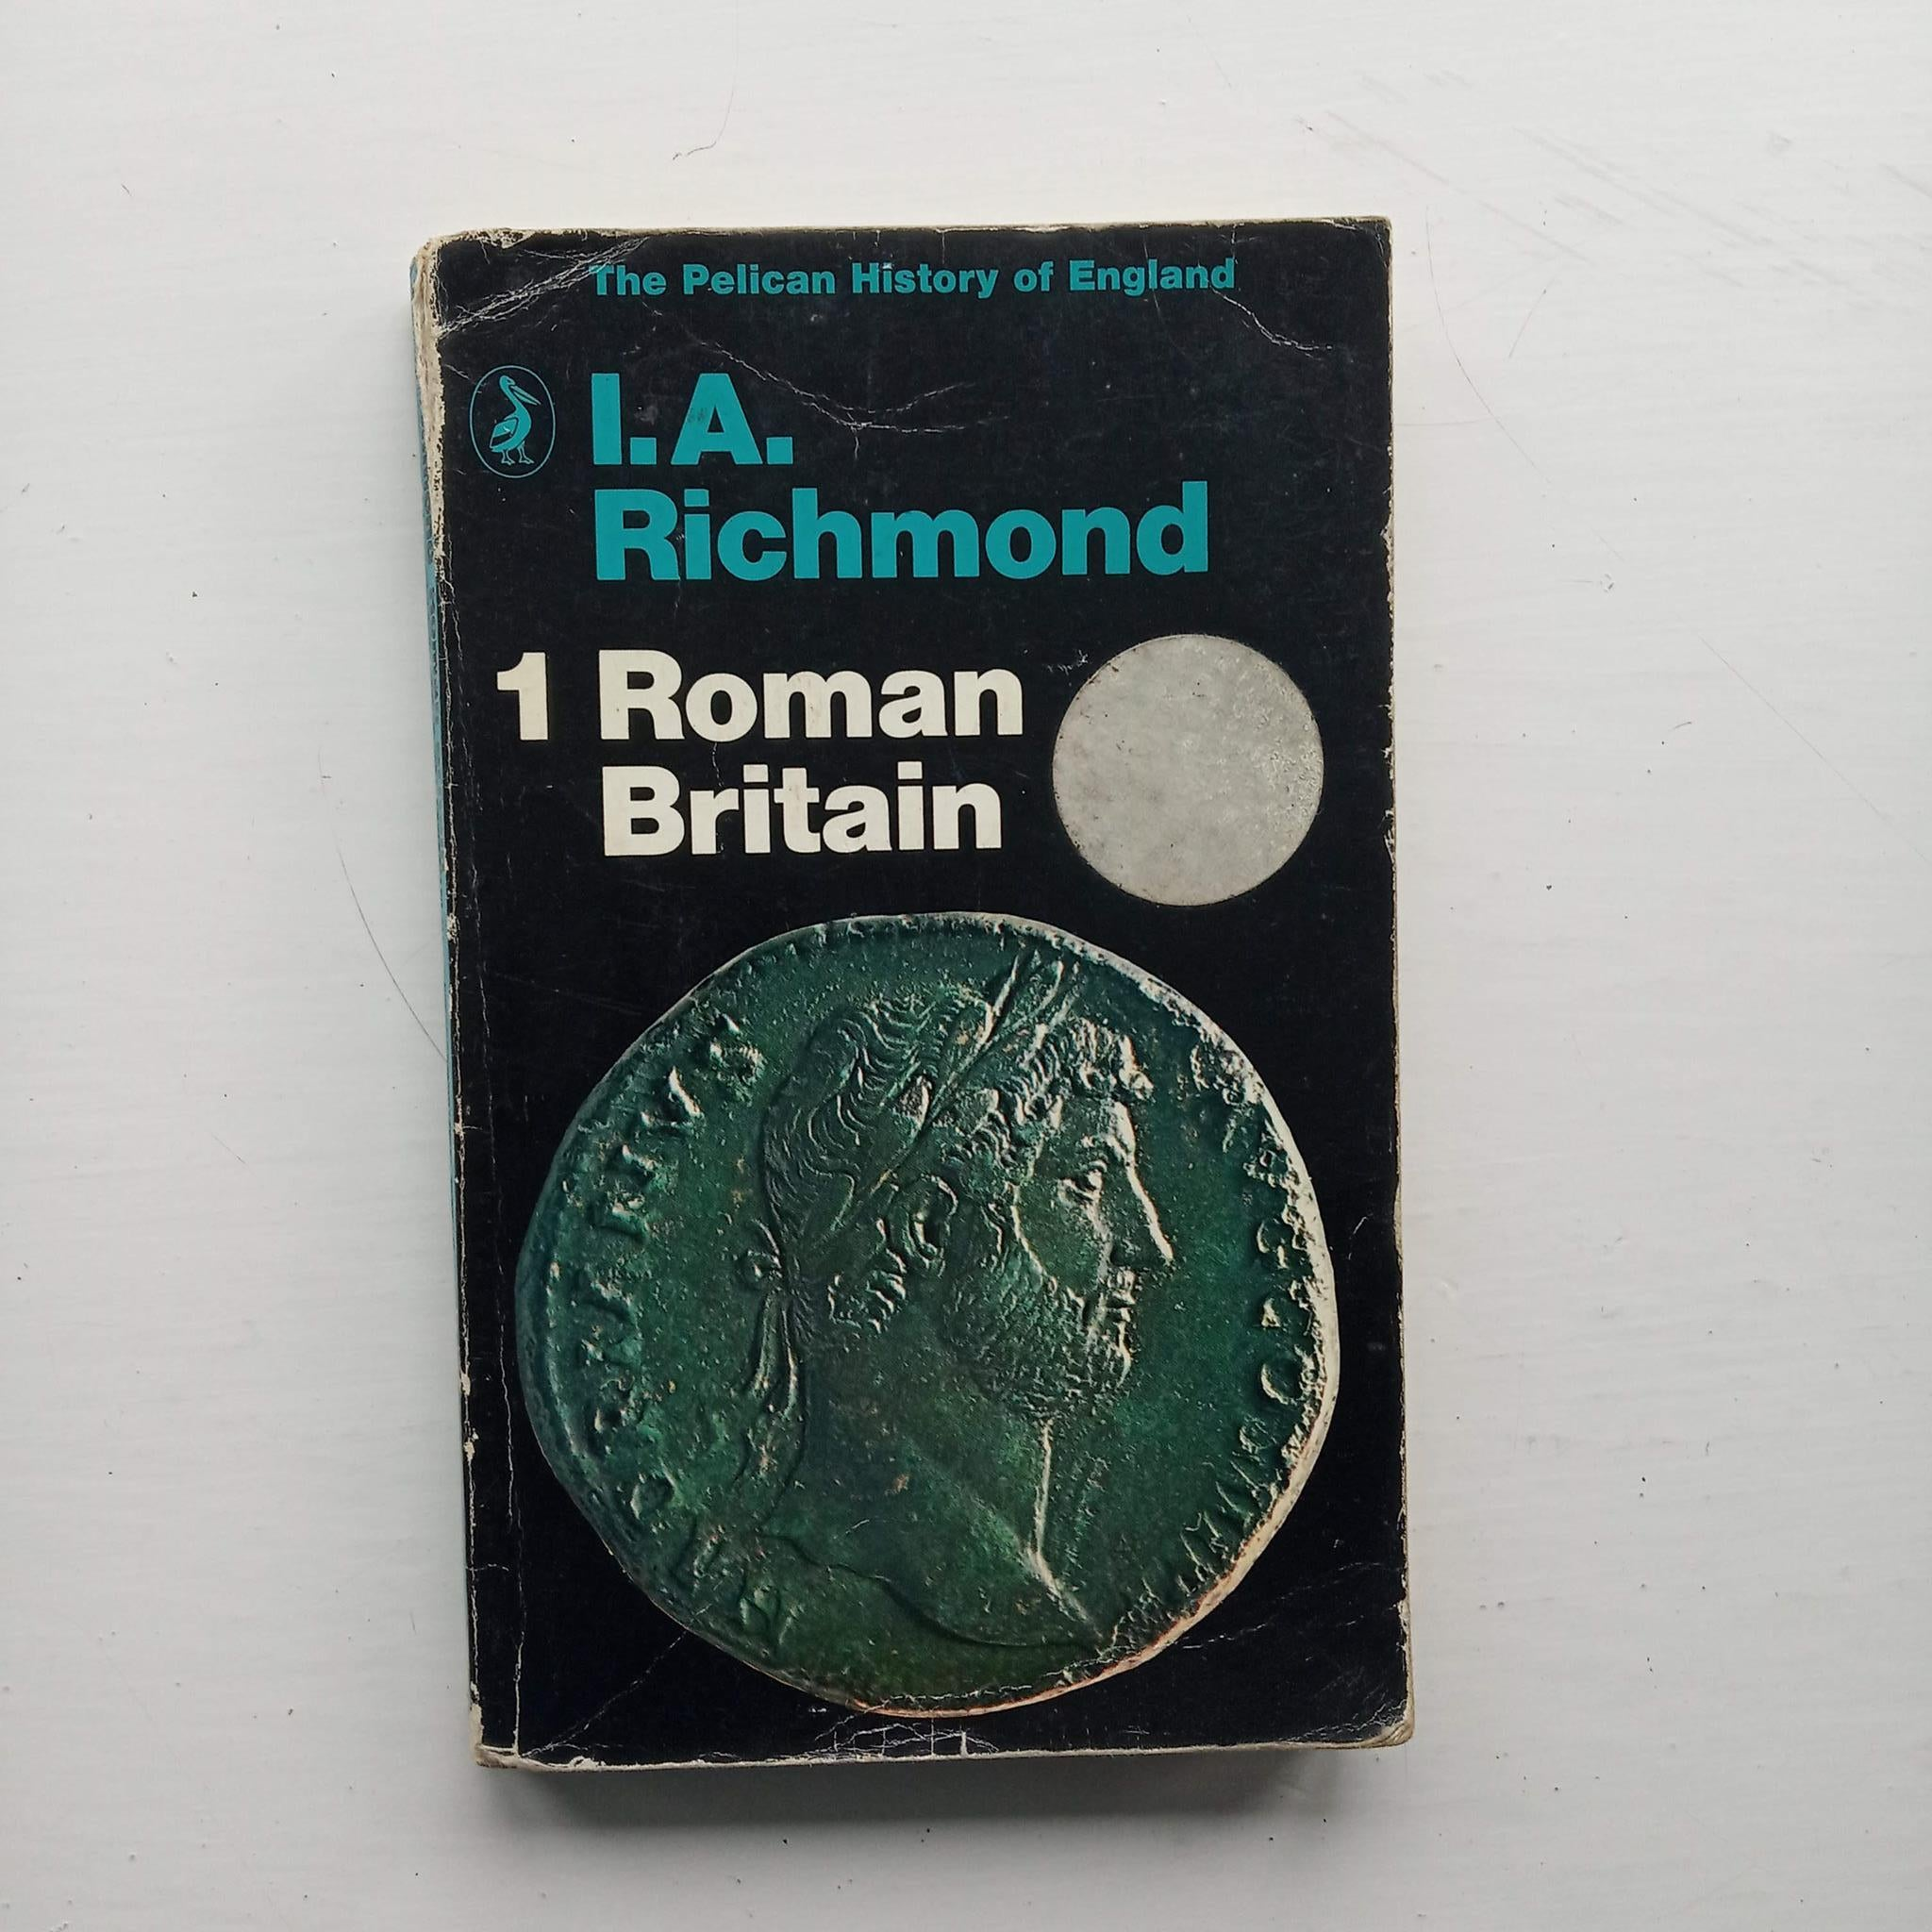 Roman Britain by I.A. Richmond